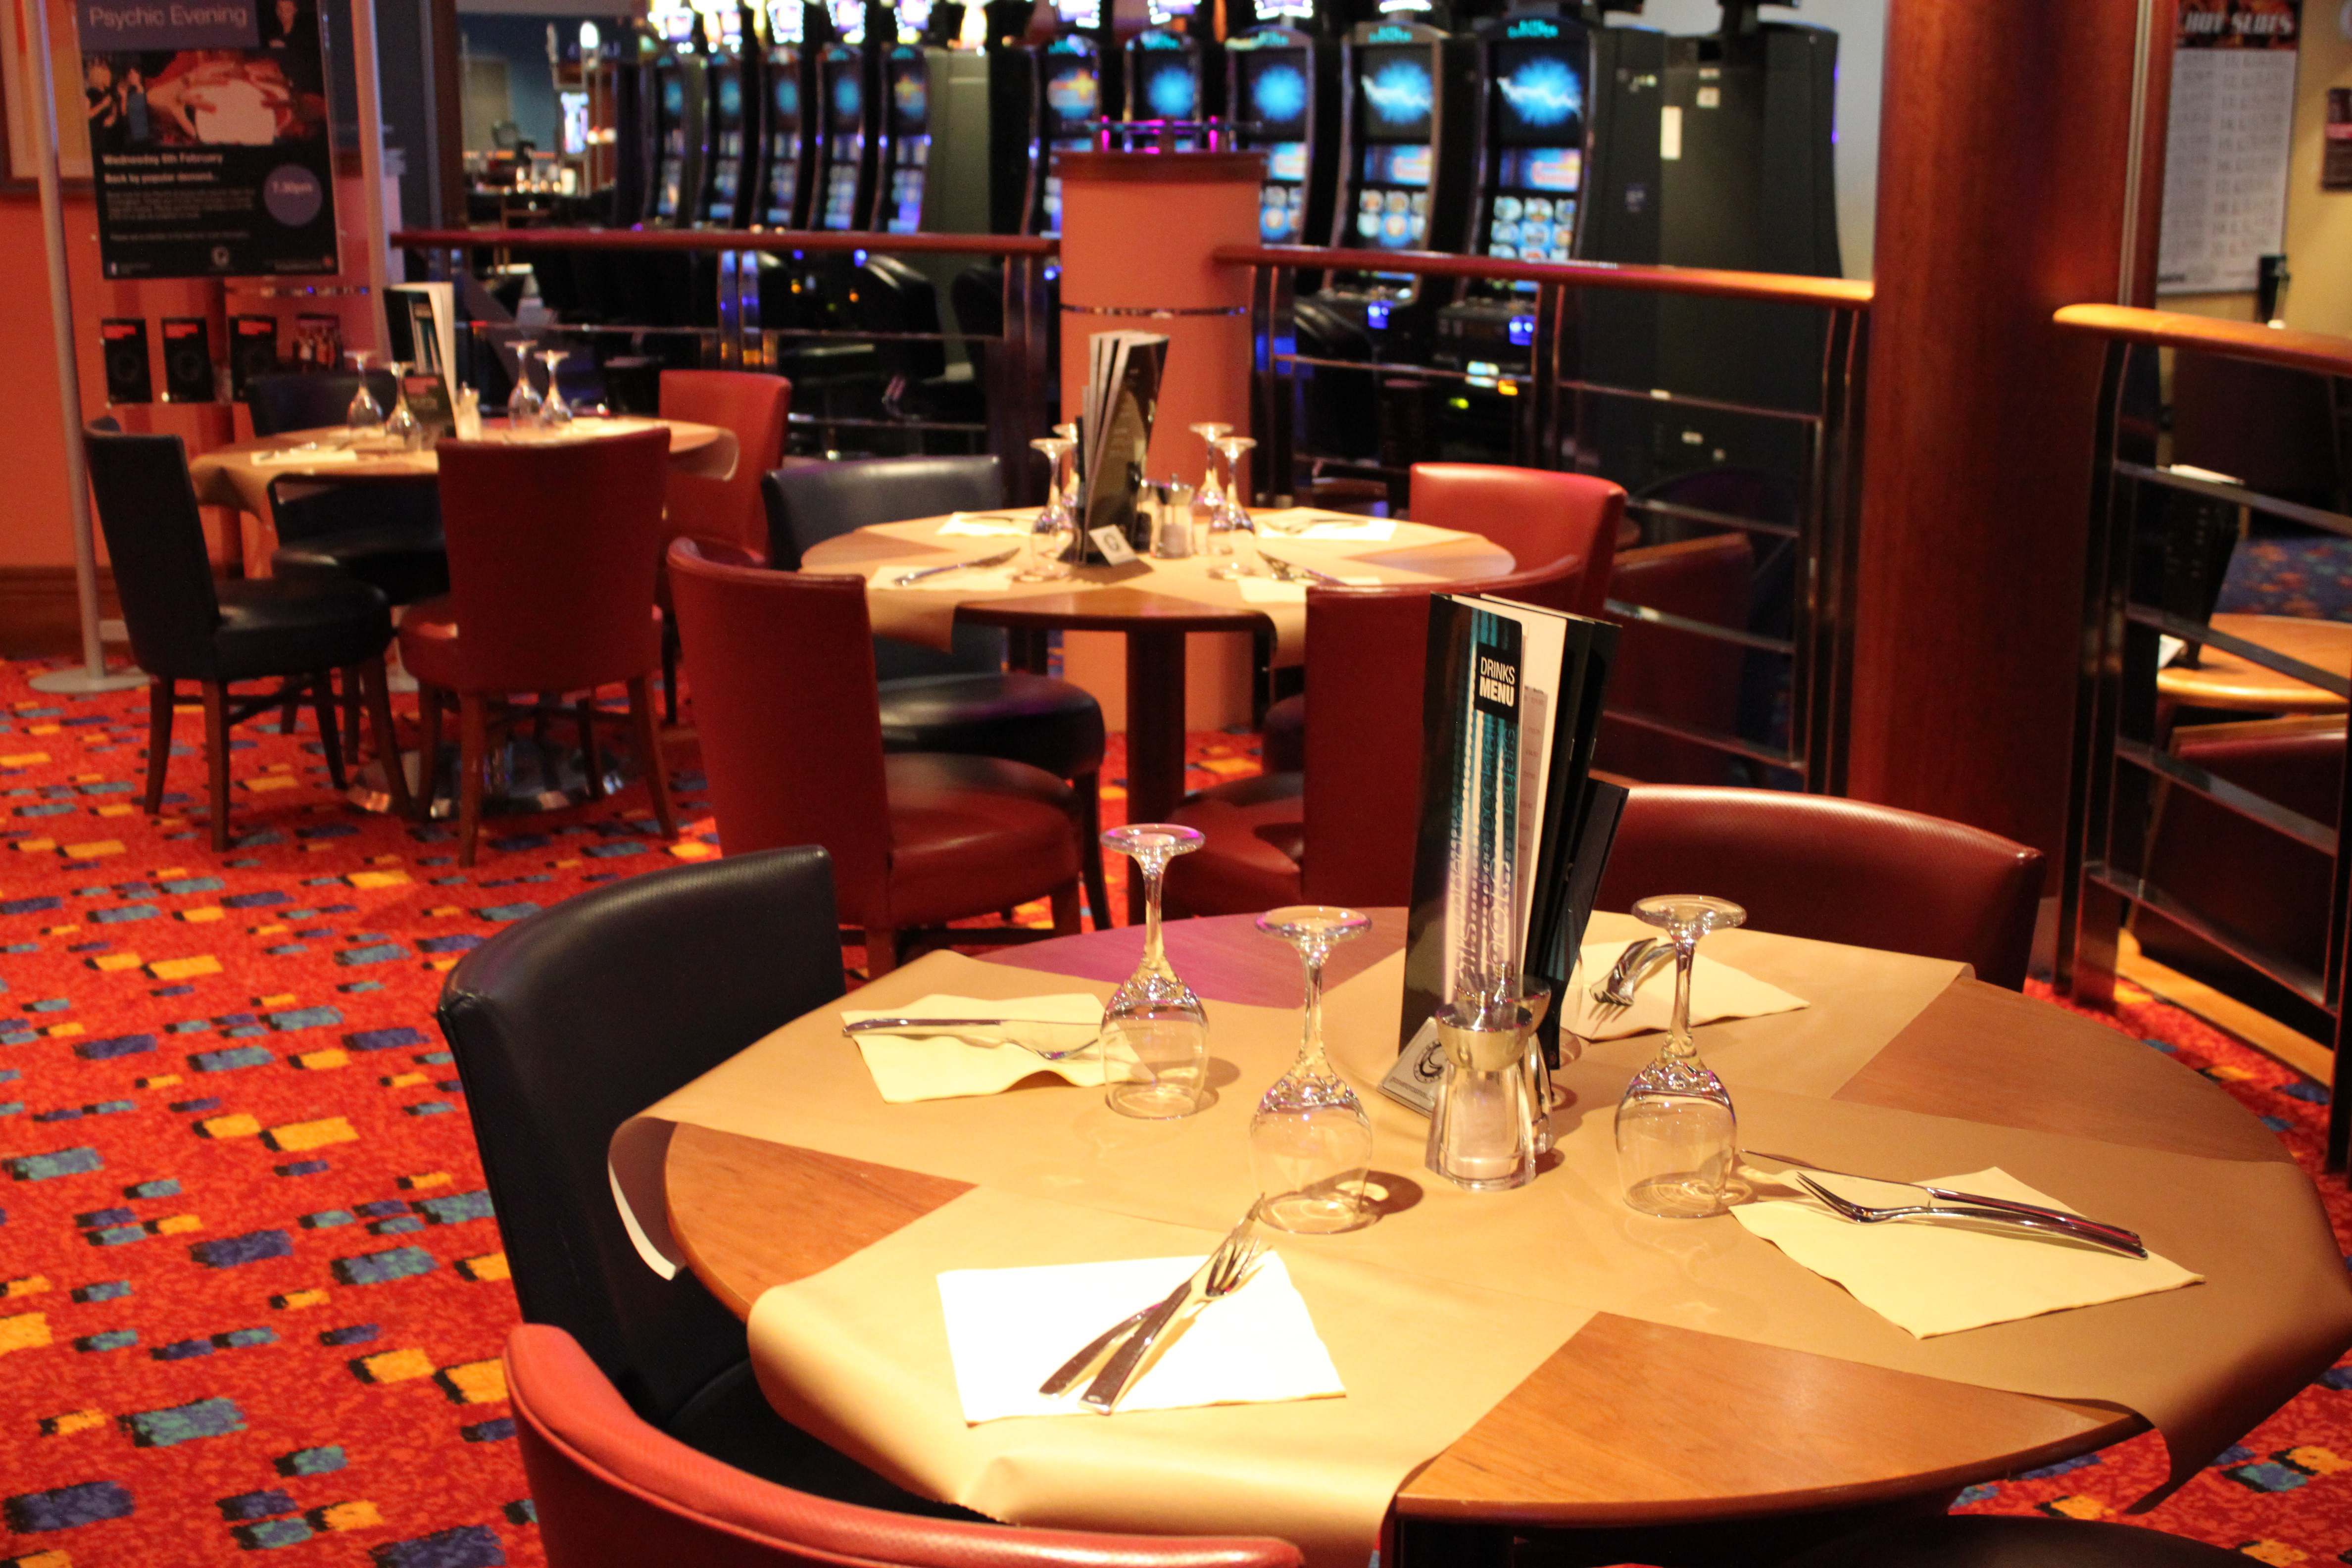 Grosvenor Casino Stoke - Staffordshire